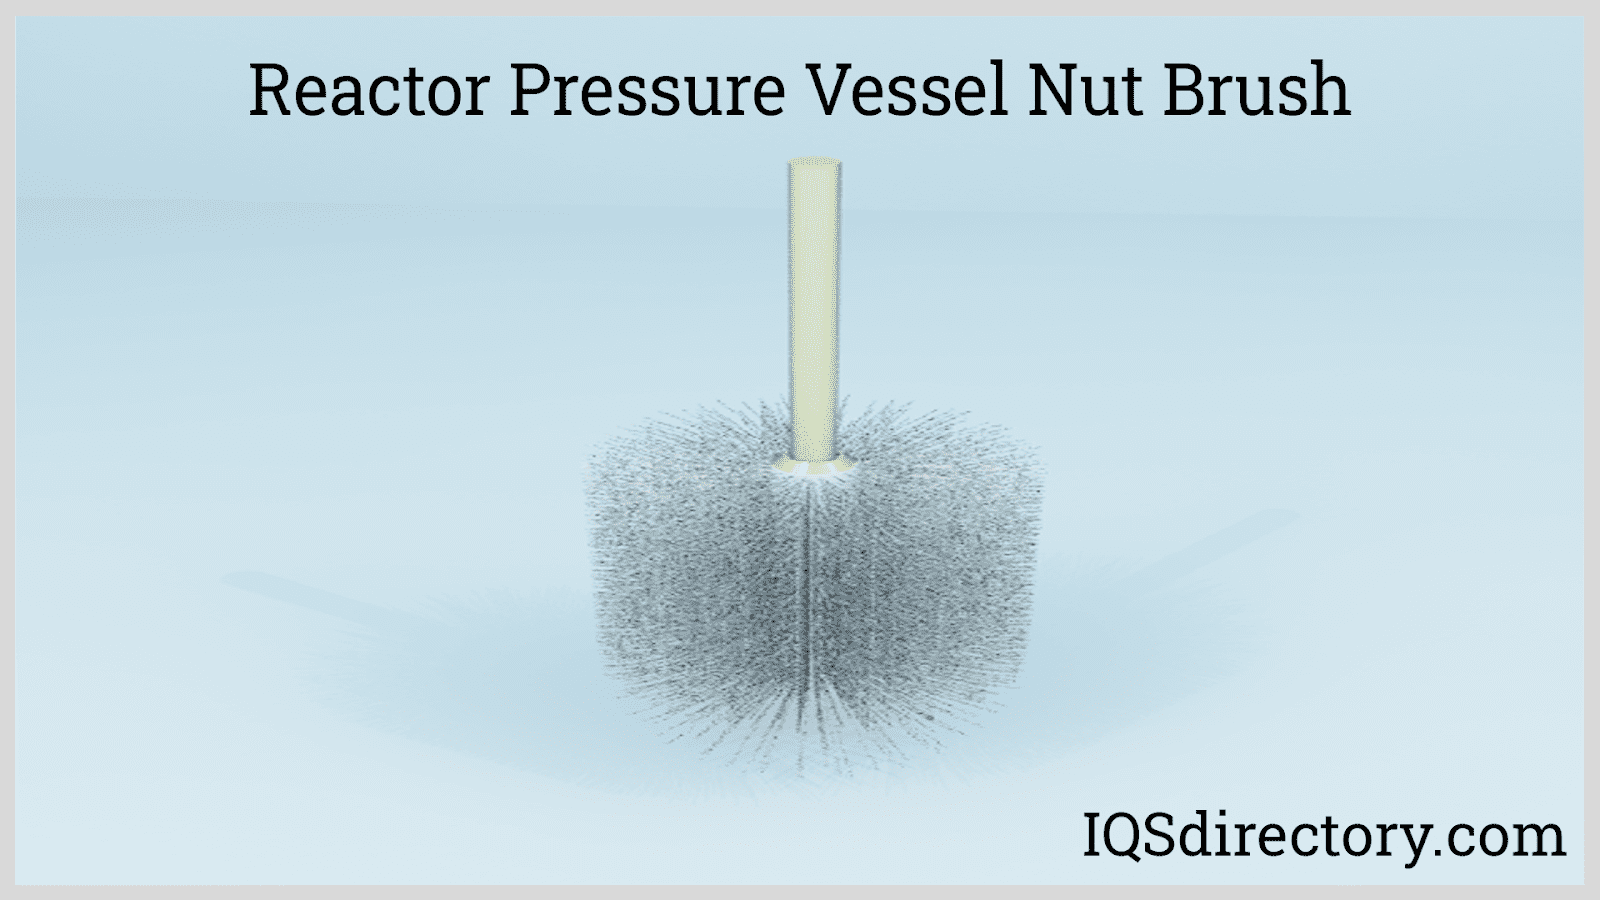 Reactor Pressure Vessel Nut Brush